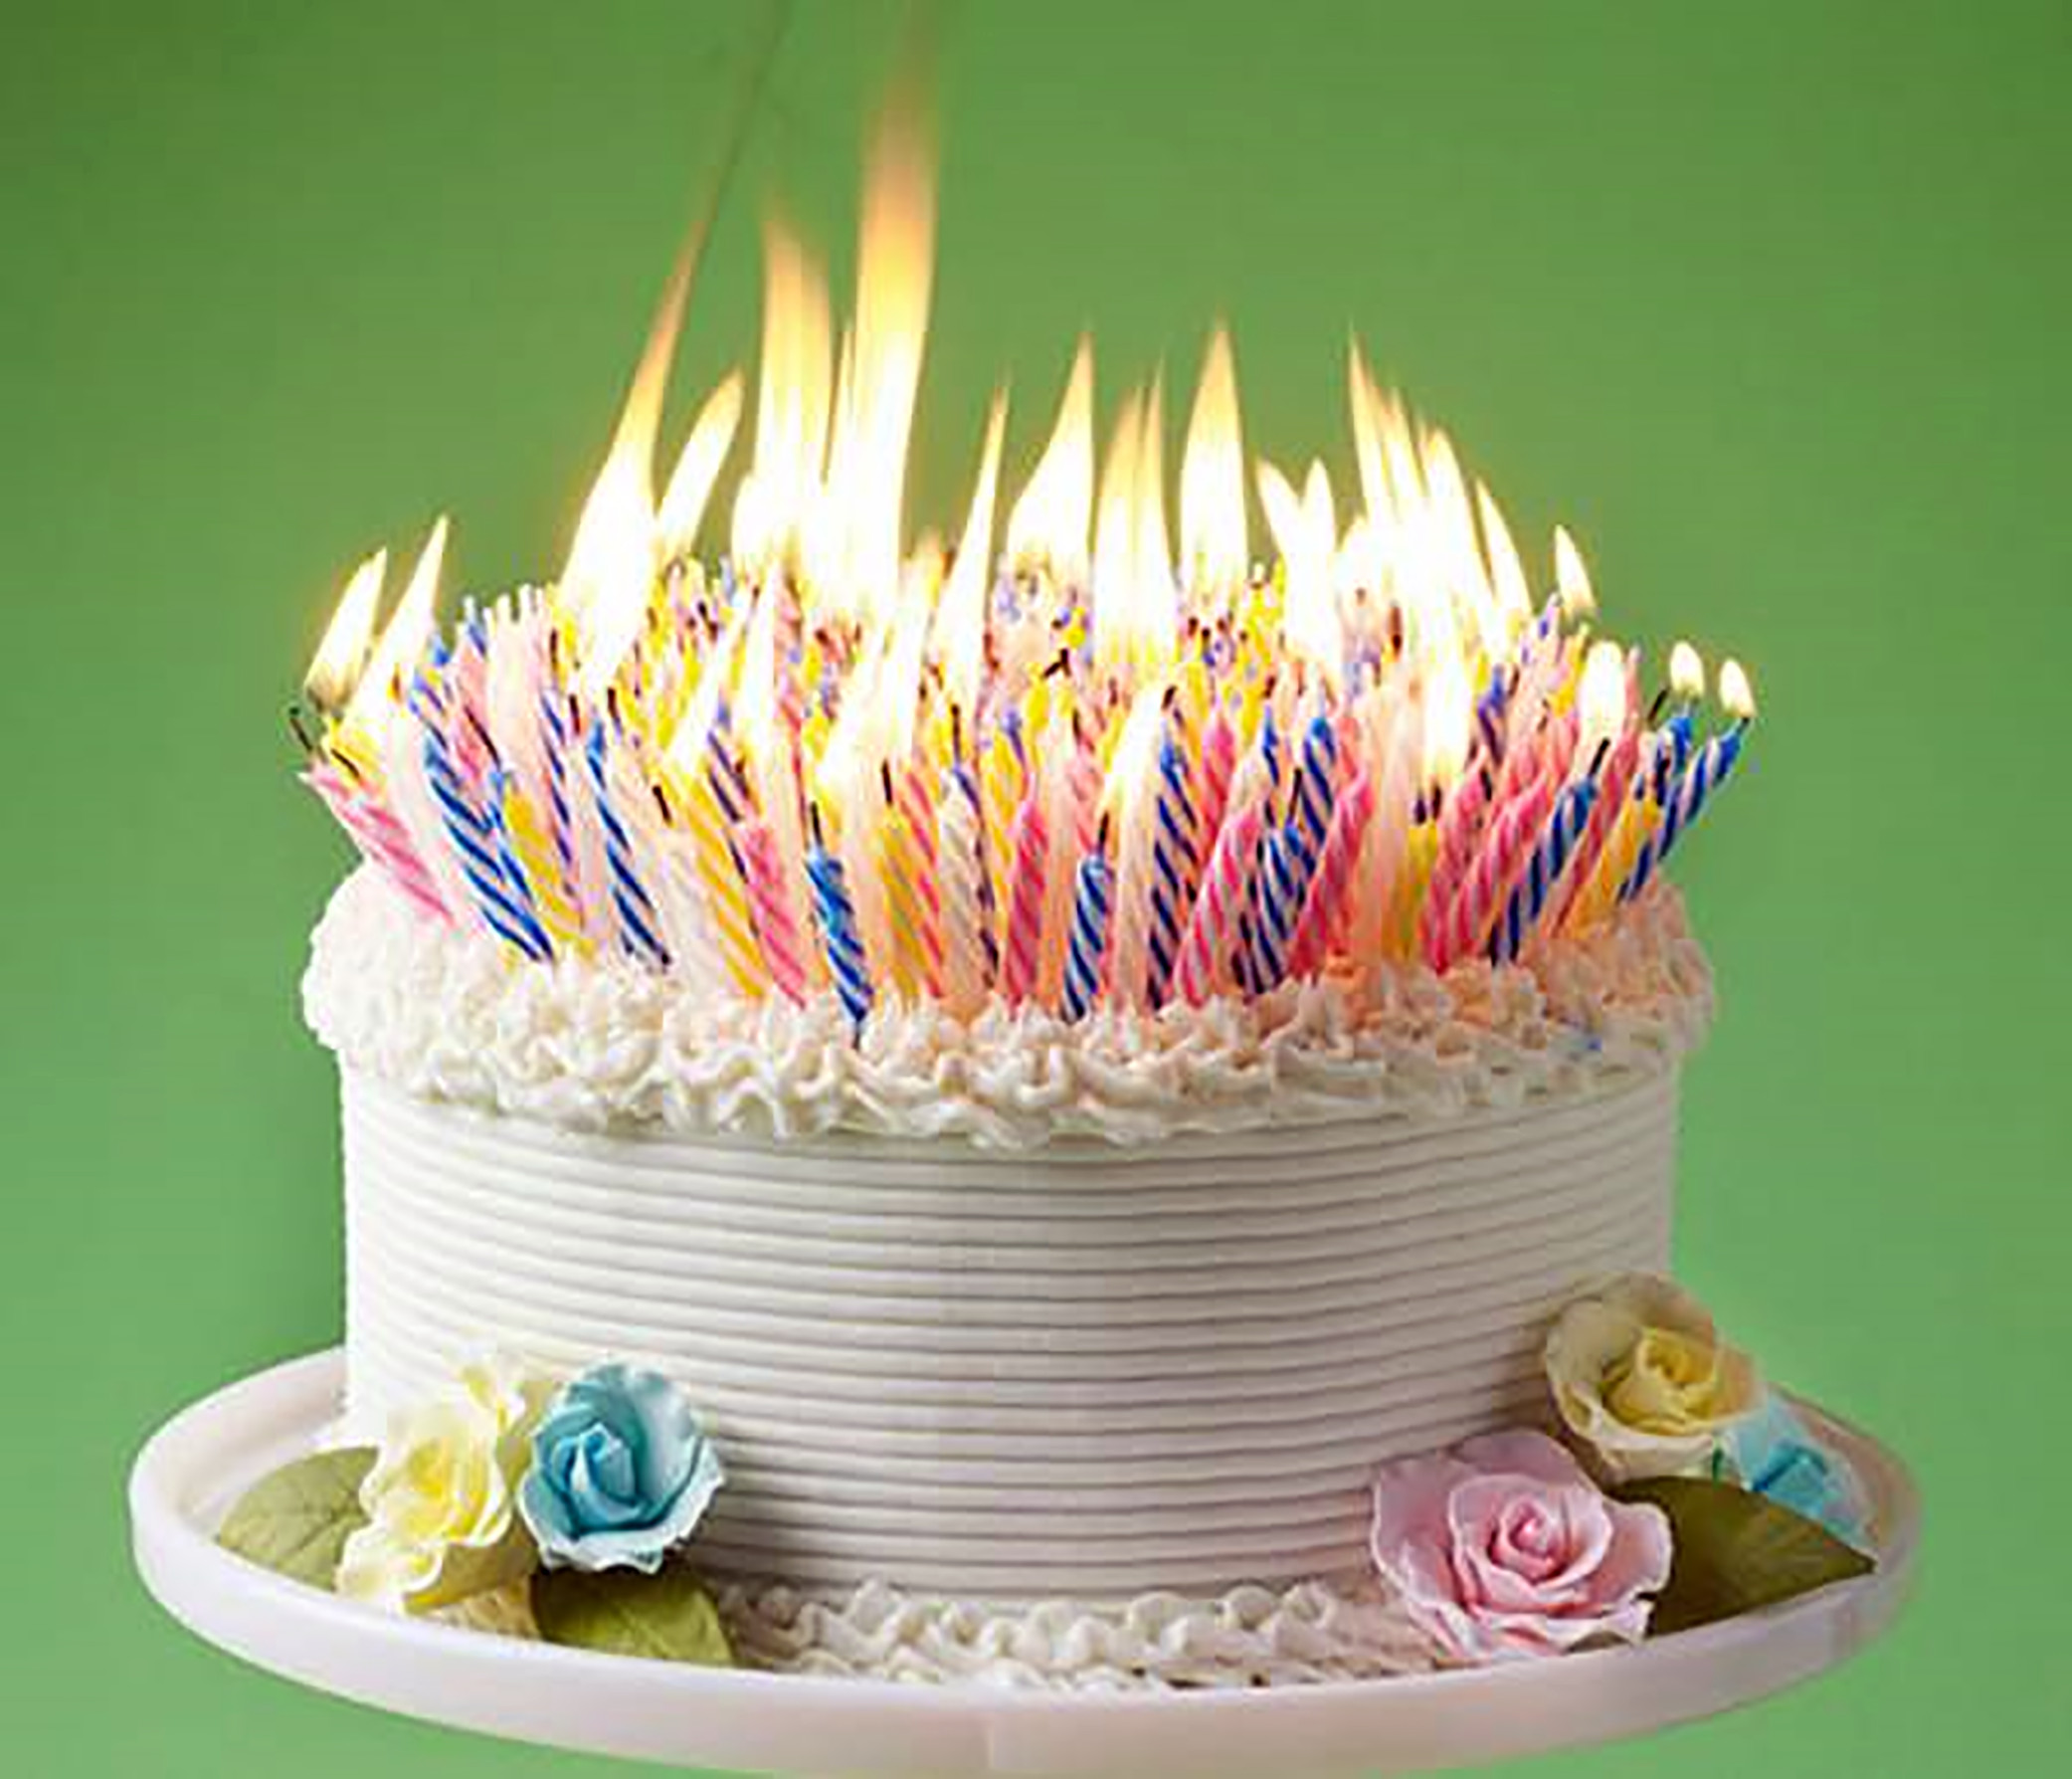 Best ideas about Birthday Cake Candles . Save or Pin My Birthday Cake Candles Almost Started a Forest Fire Now.